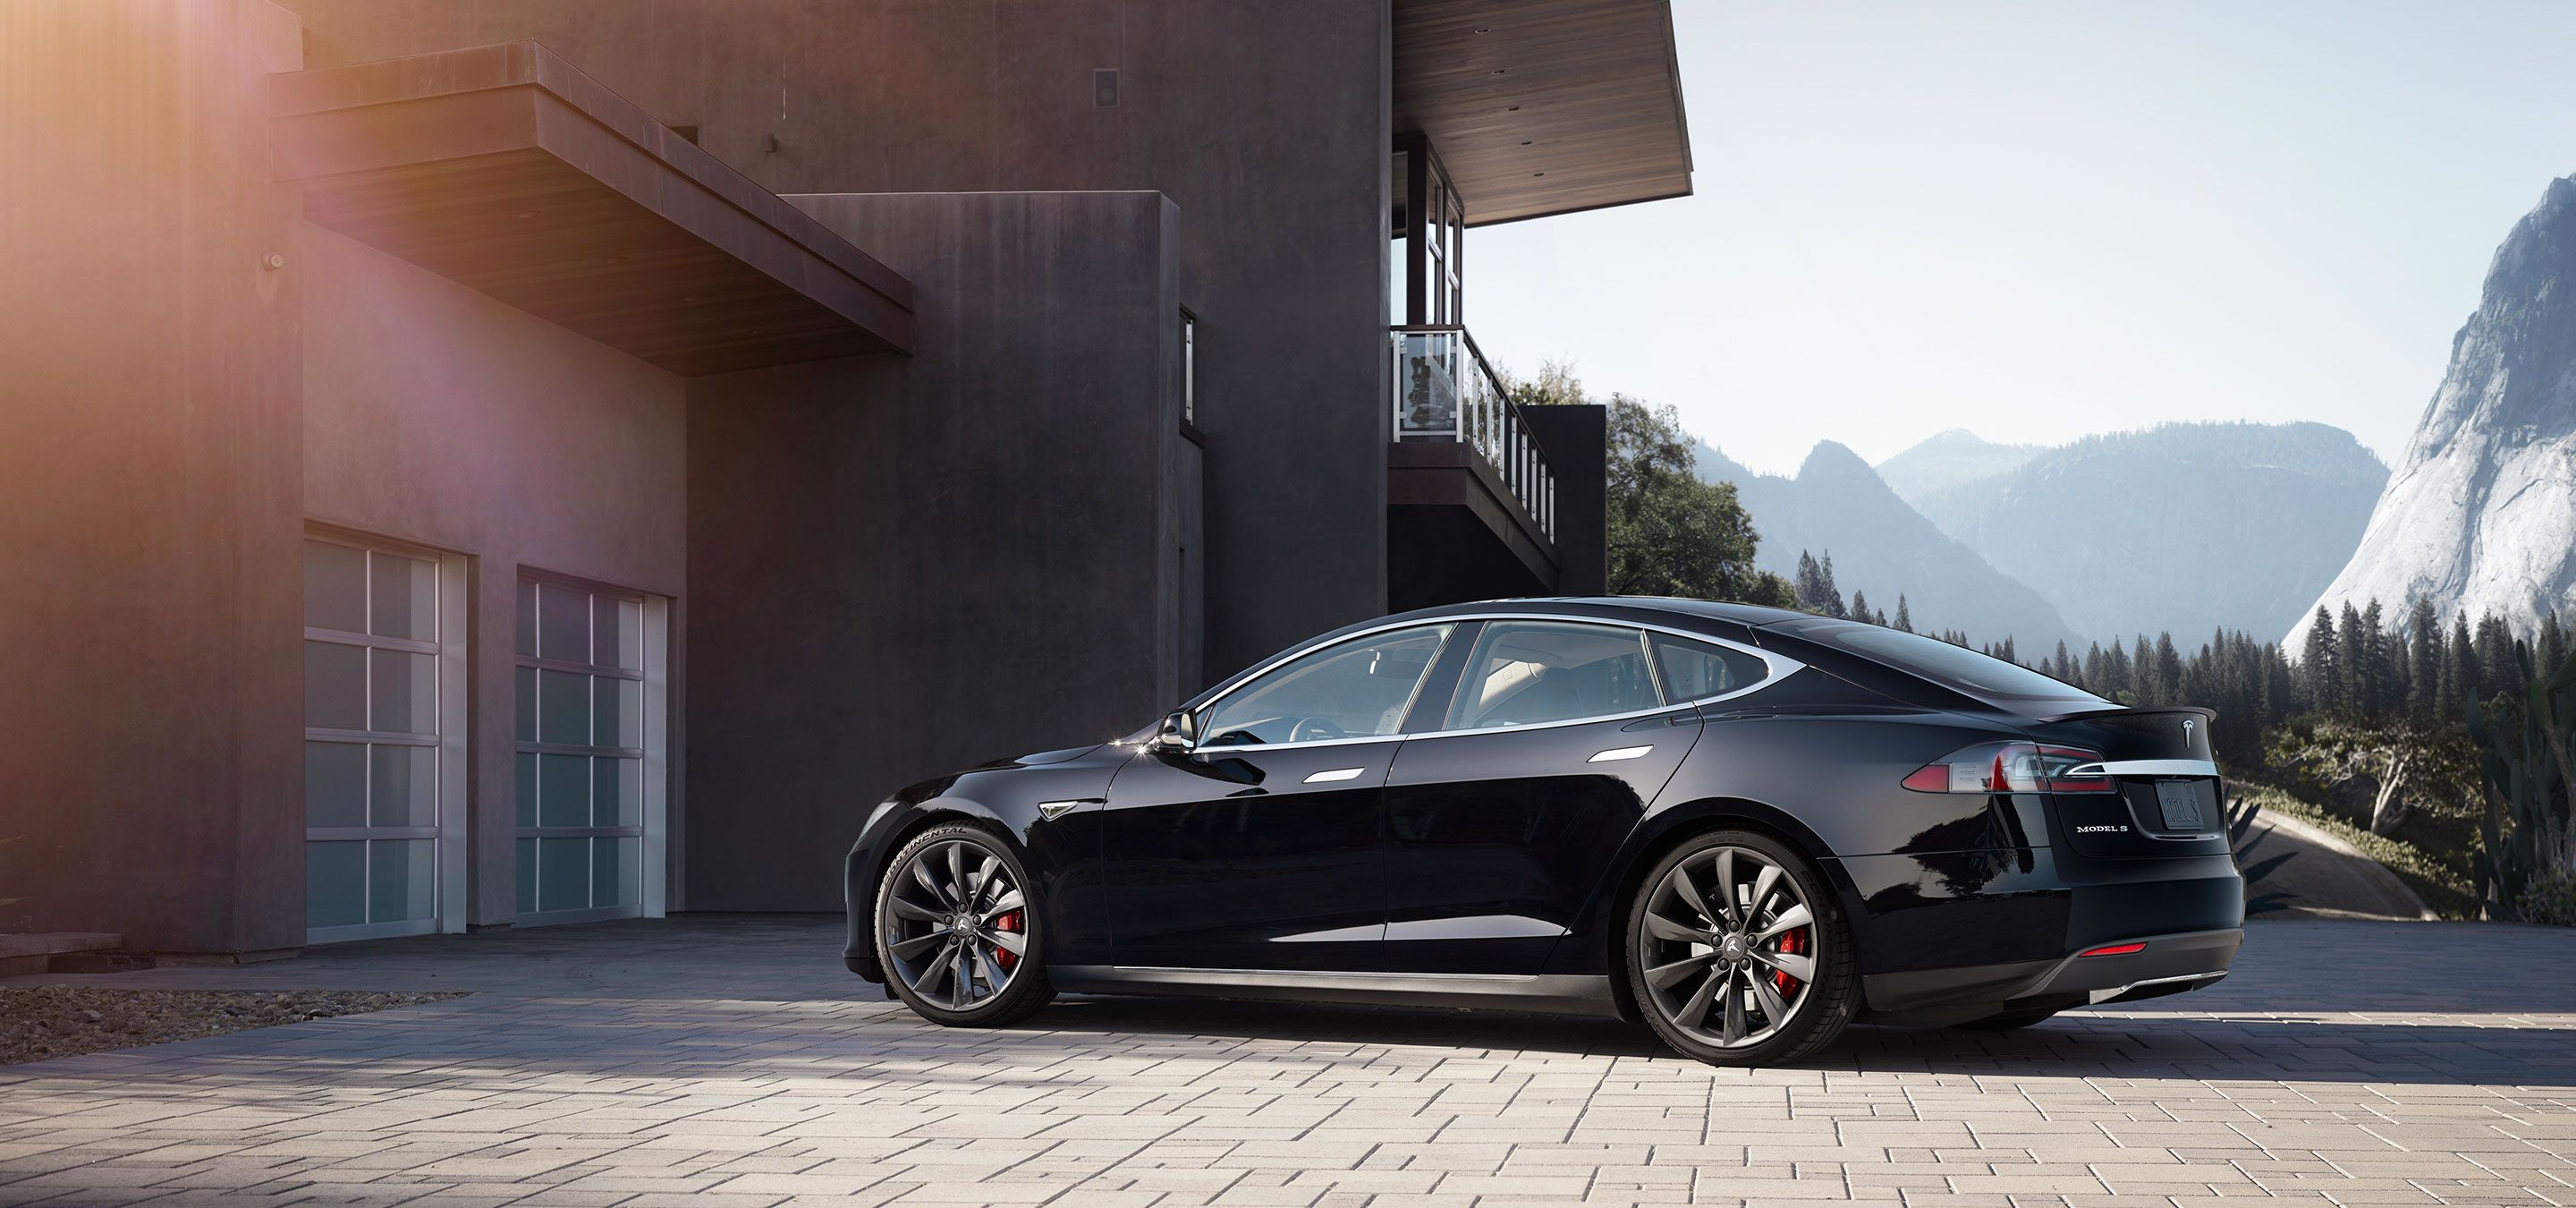 These Are The Hidden Costs Of Buying That Tesla You Always Wanted